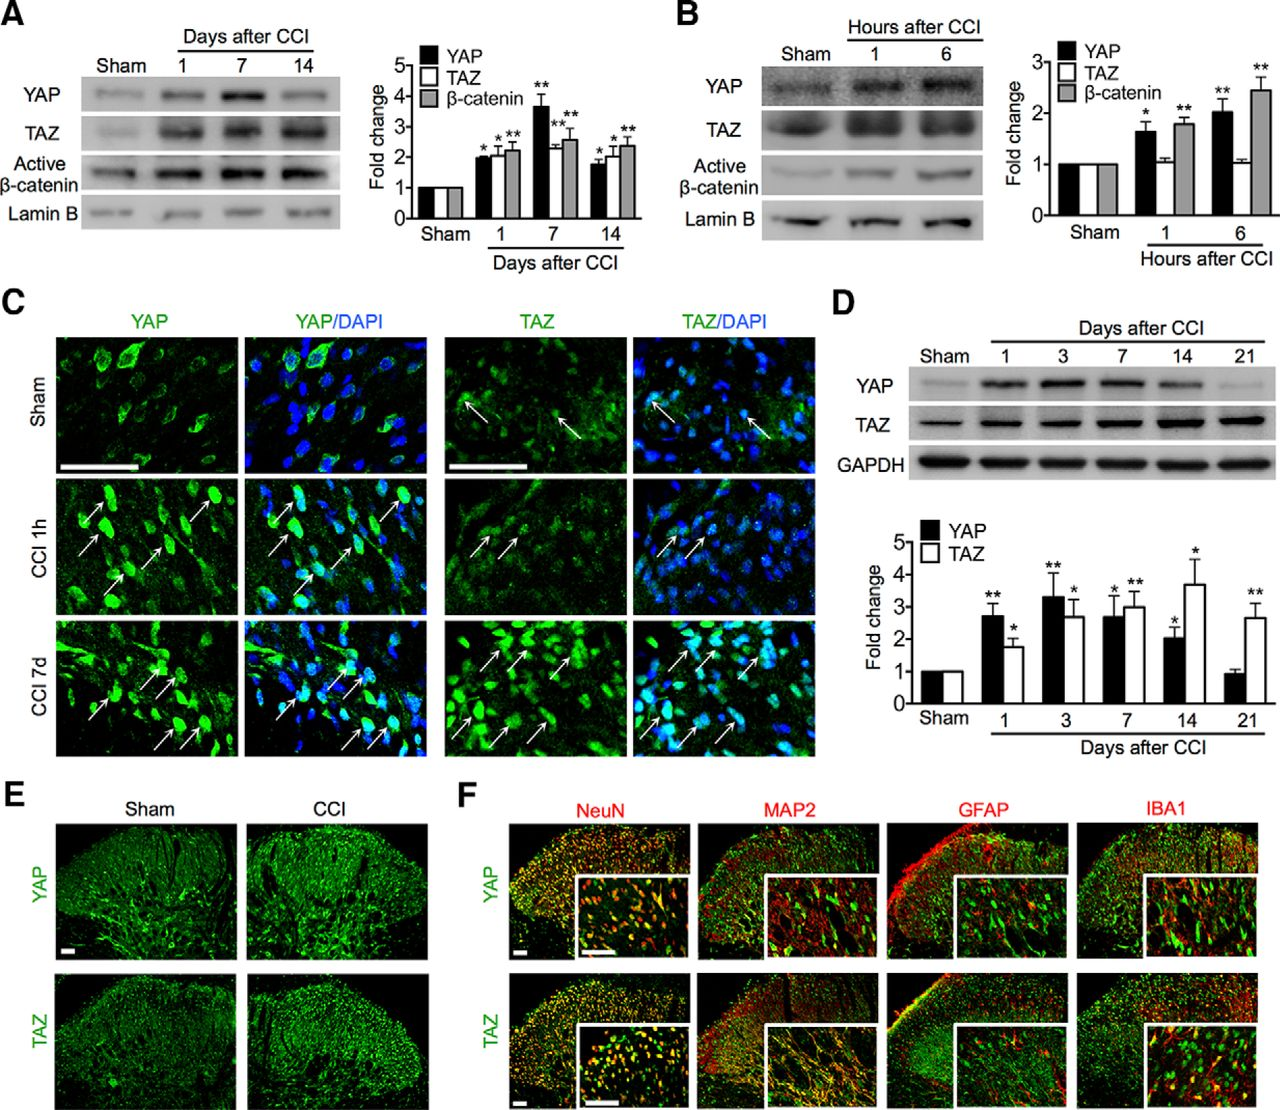 Inhibition Of Yap Taz Activity In Spinal Cord Suppresses Neuropathic Pure Apnea Level 1 Course Download Figure